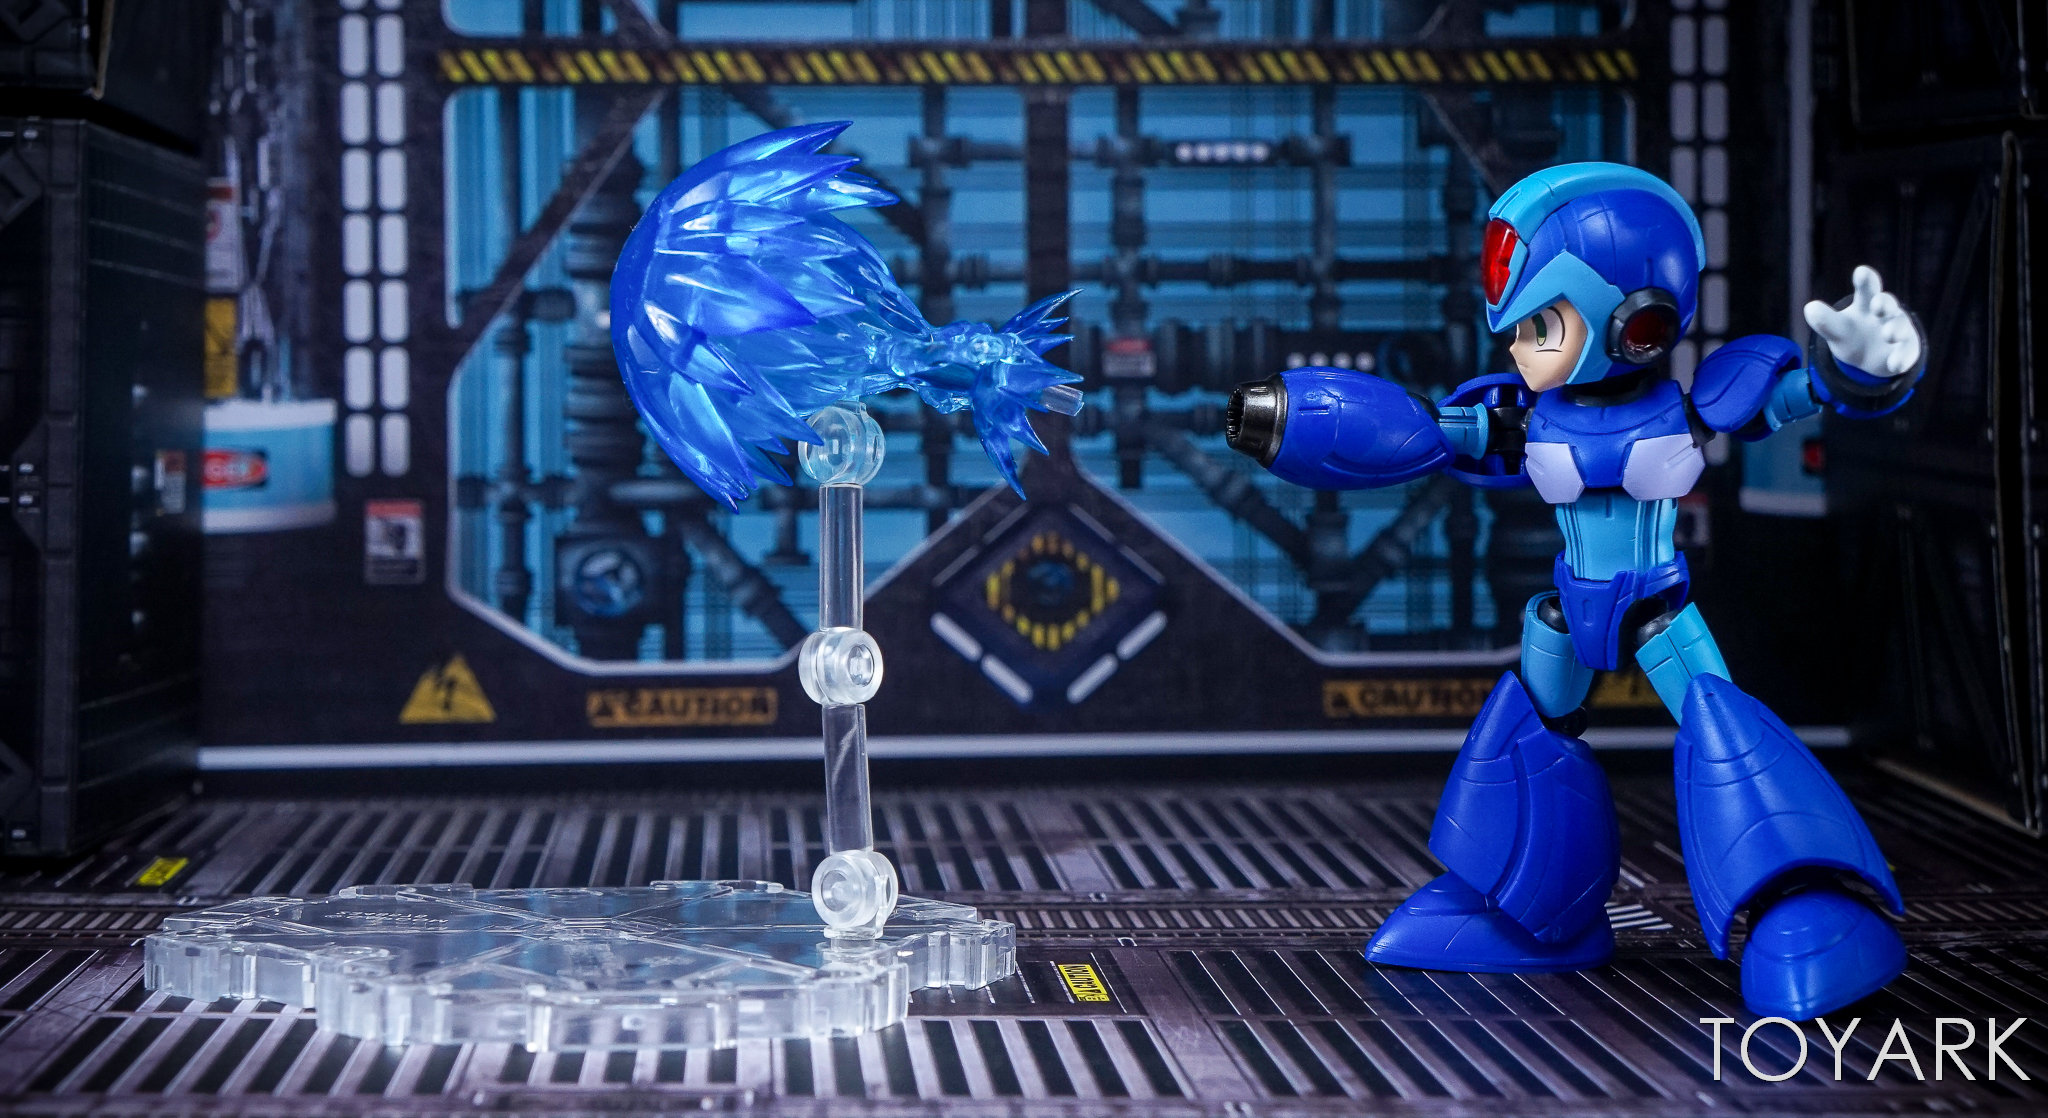 http://news.toyark.com/wp-content/uploads/sites/4/2017/11/Mega-Man-X-NX-Edge-Style-025.jpg